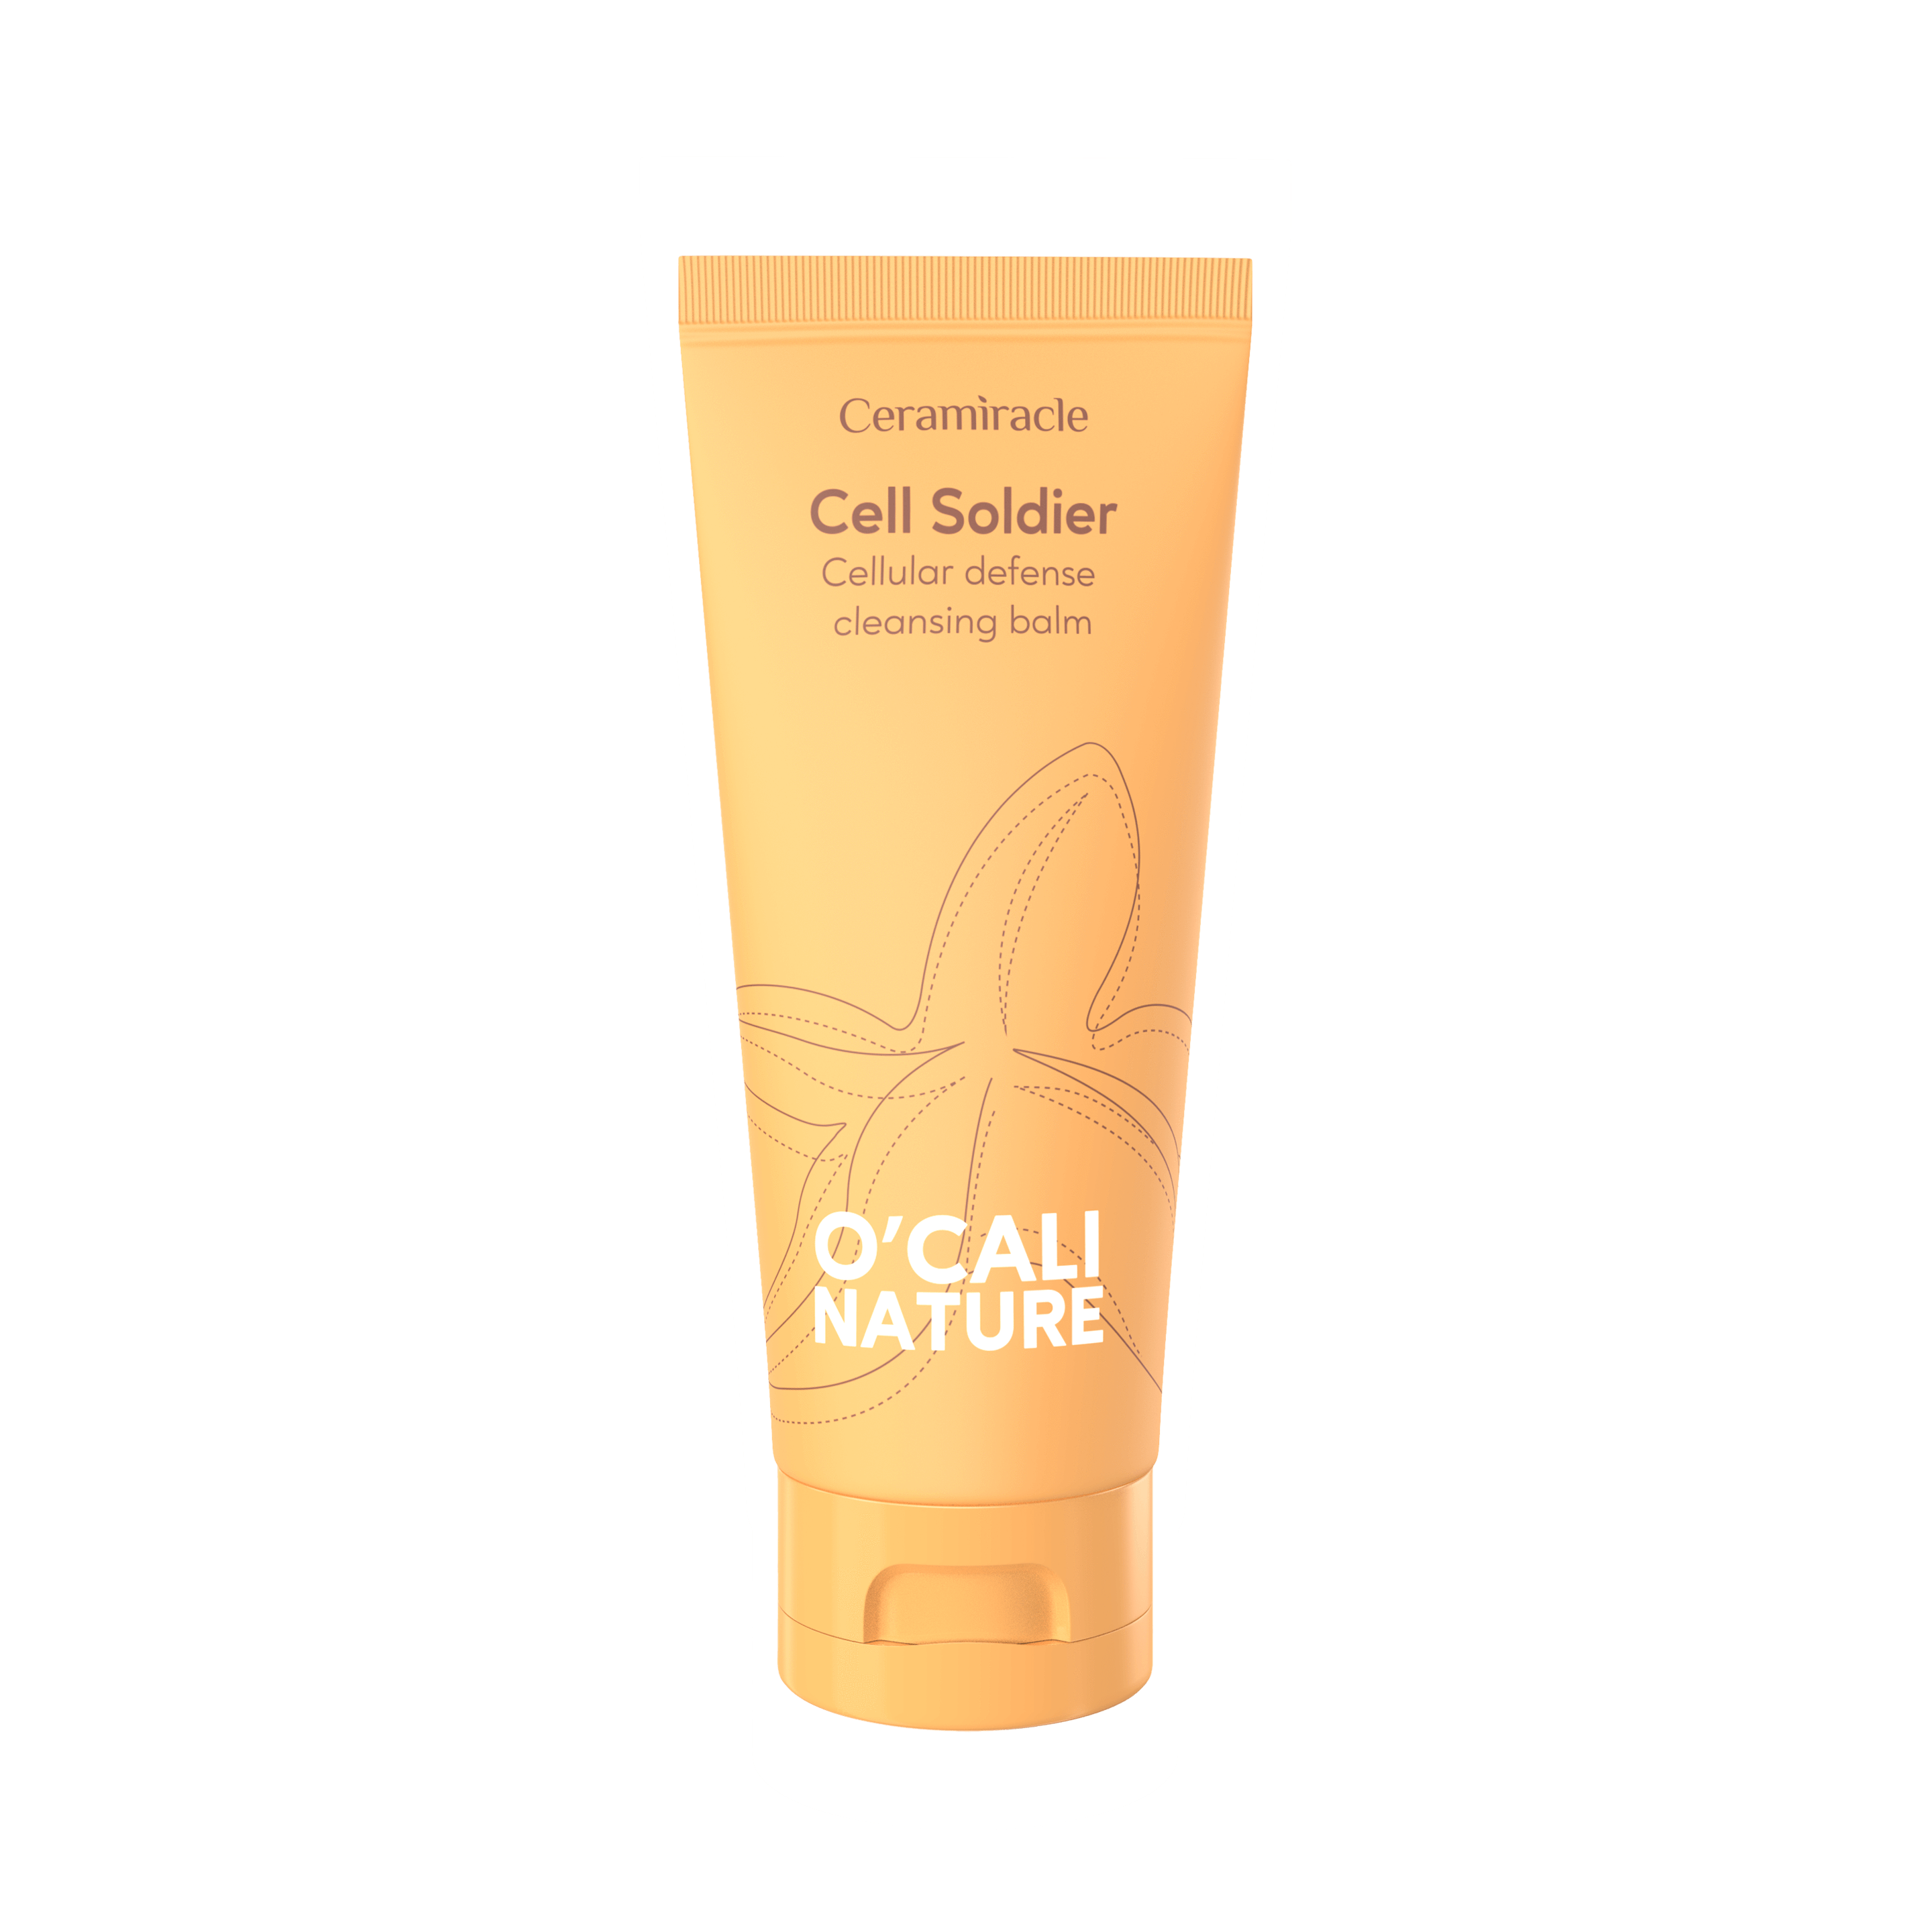 Cell Soldier Cleansing Balm